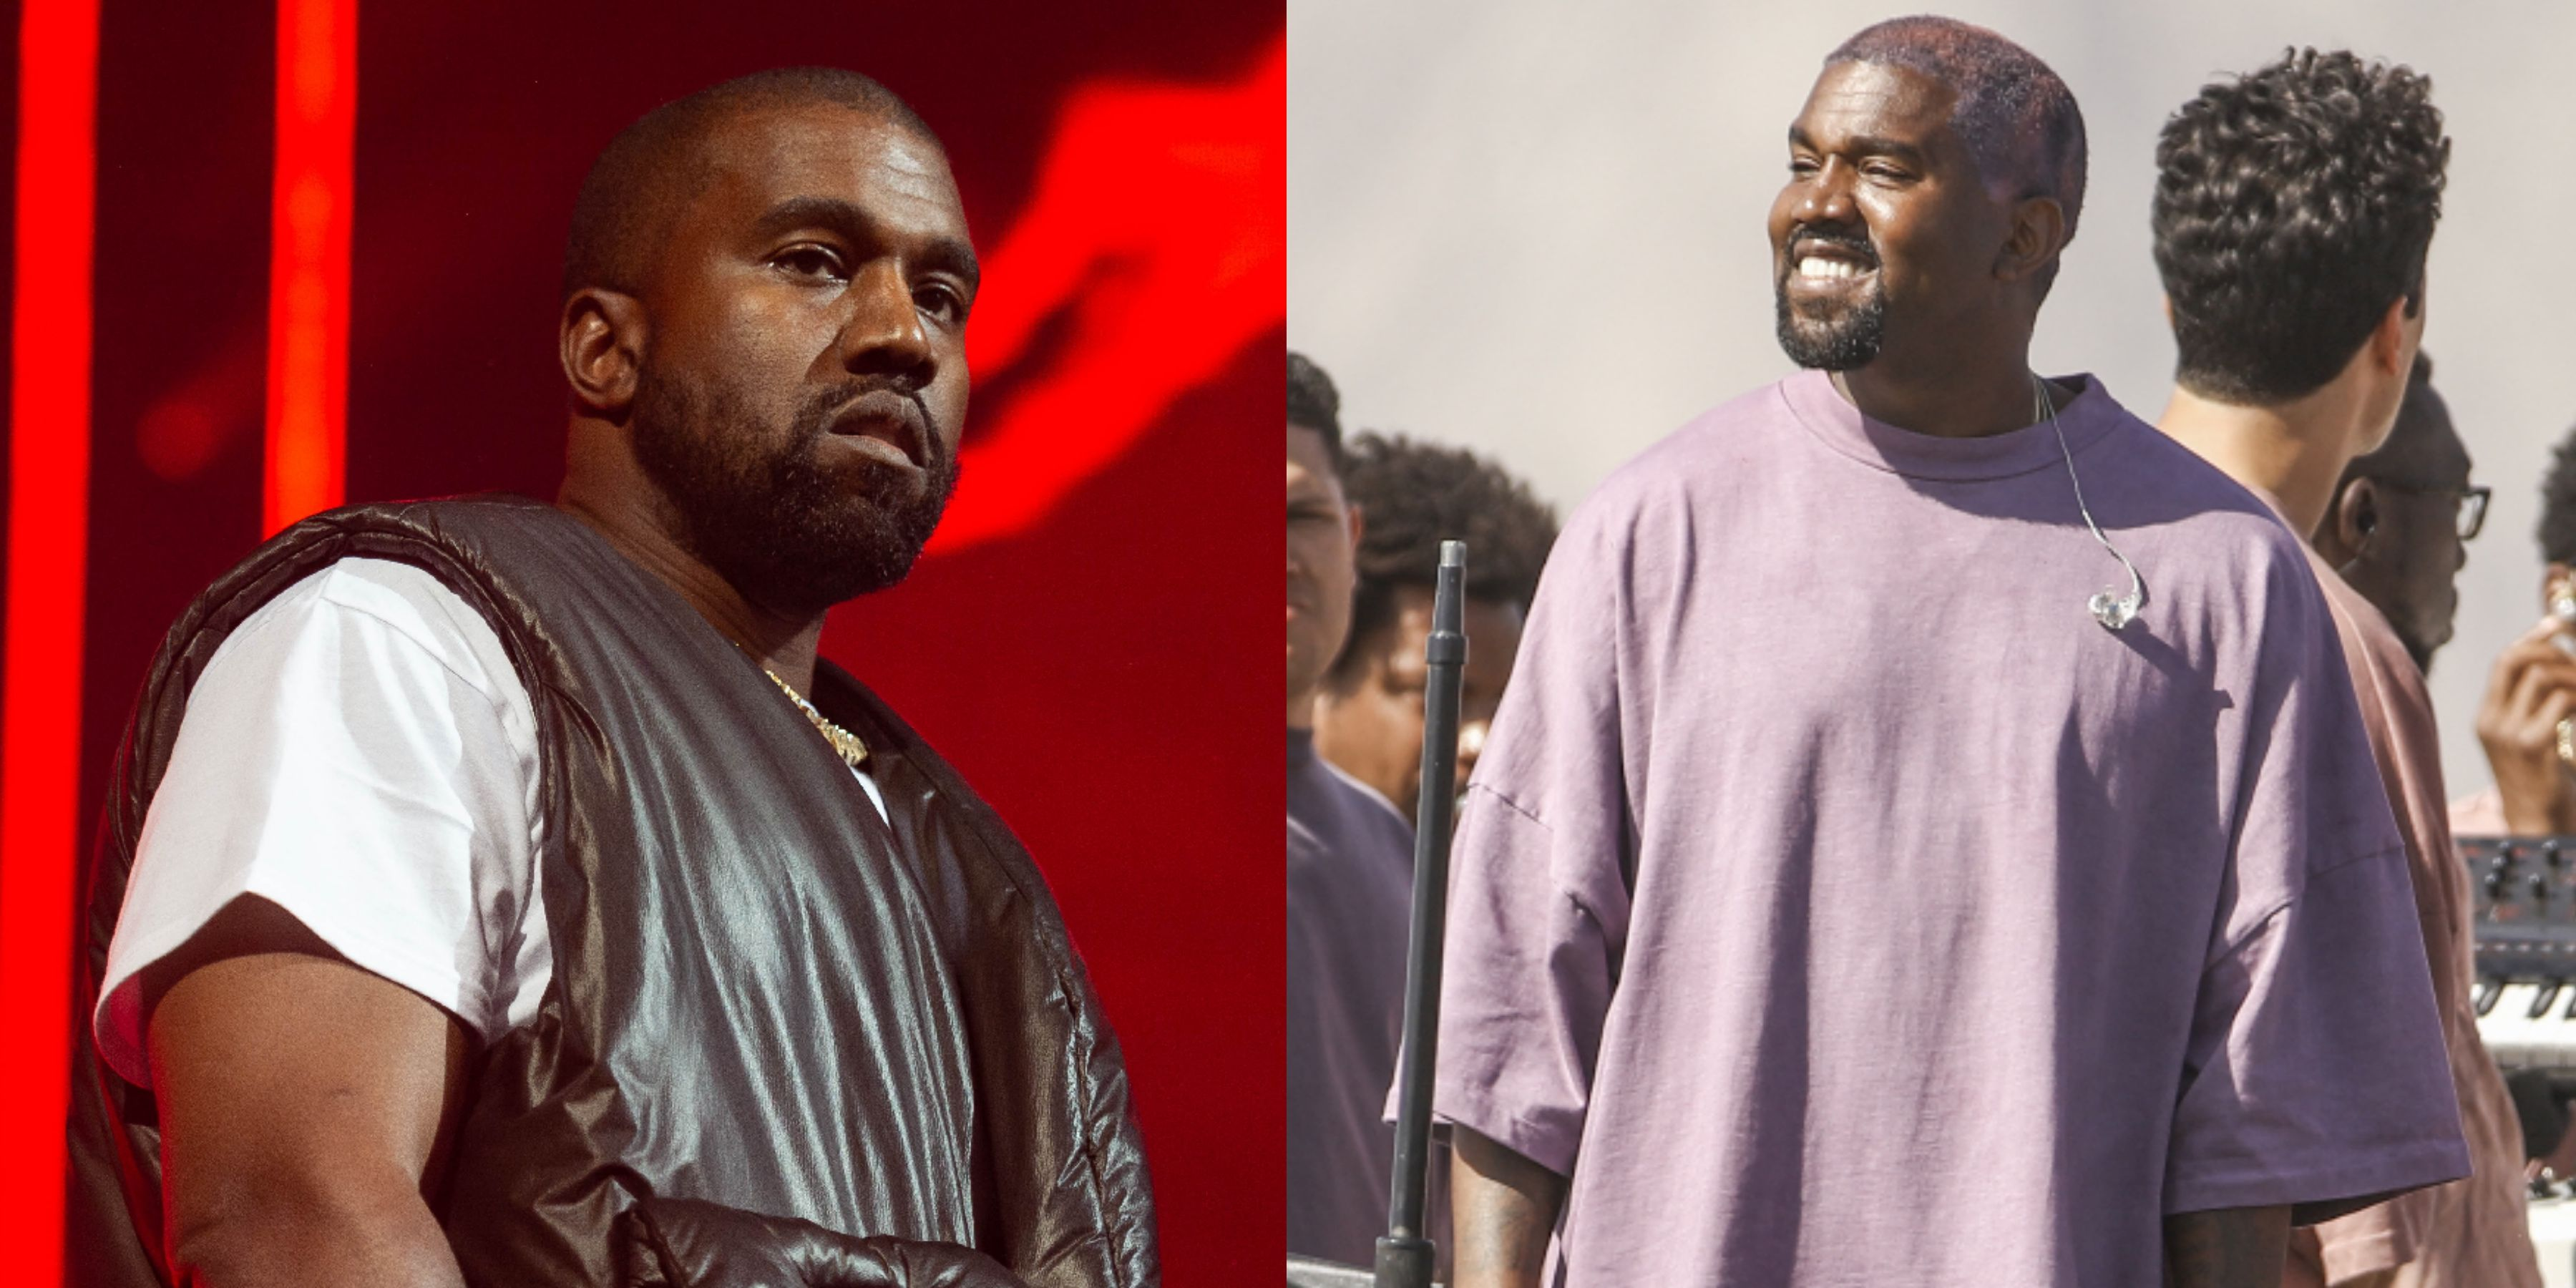 Here's What's Really Going On With Kanye West's New Albums Yandhi and Jesus Is King